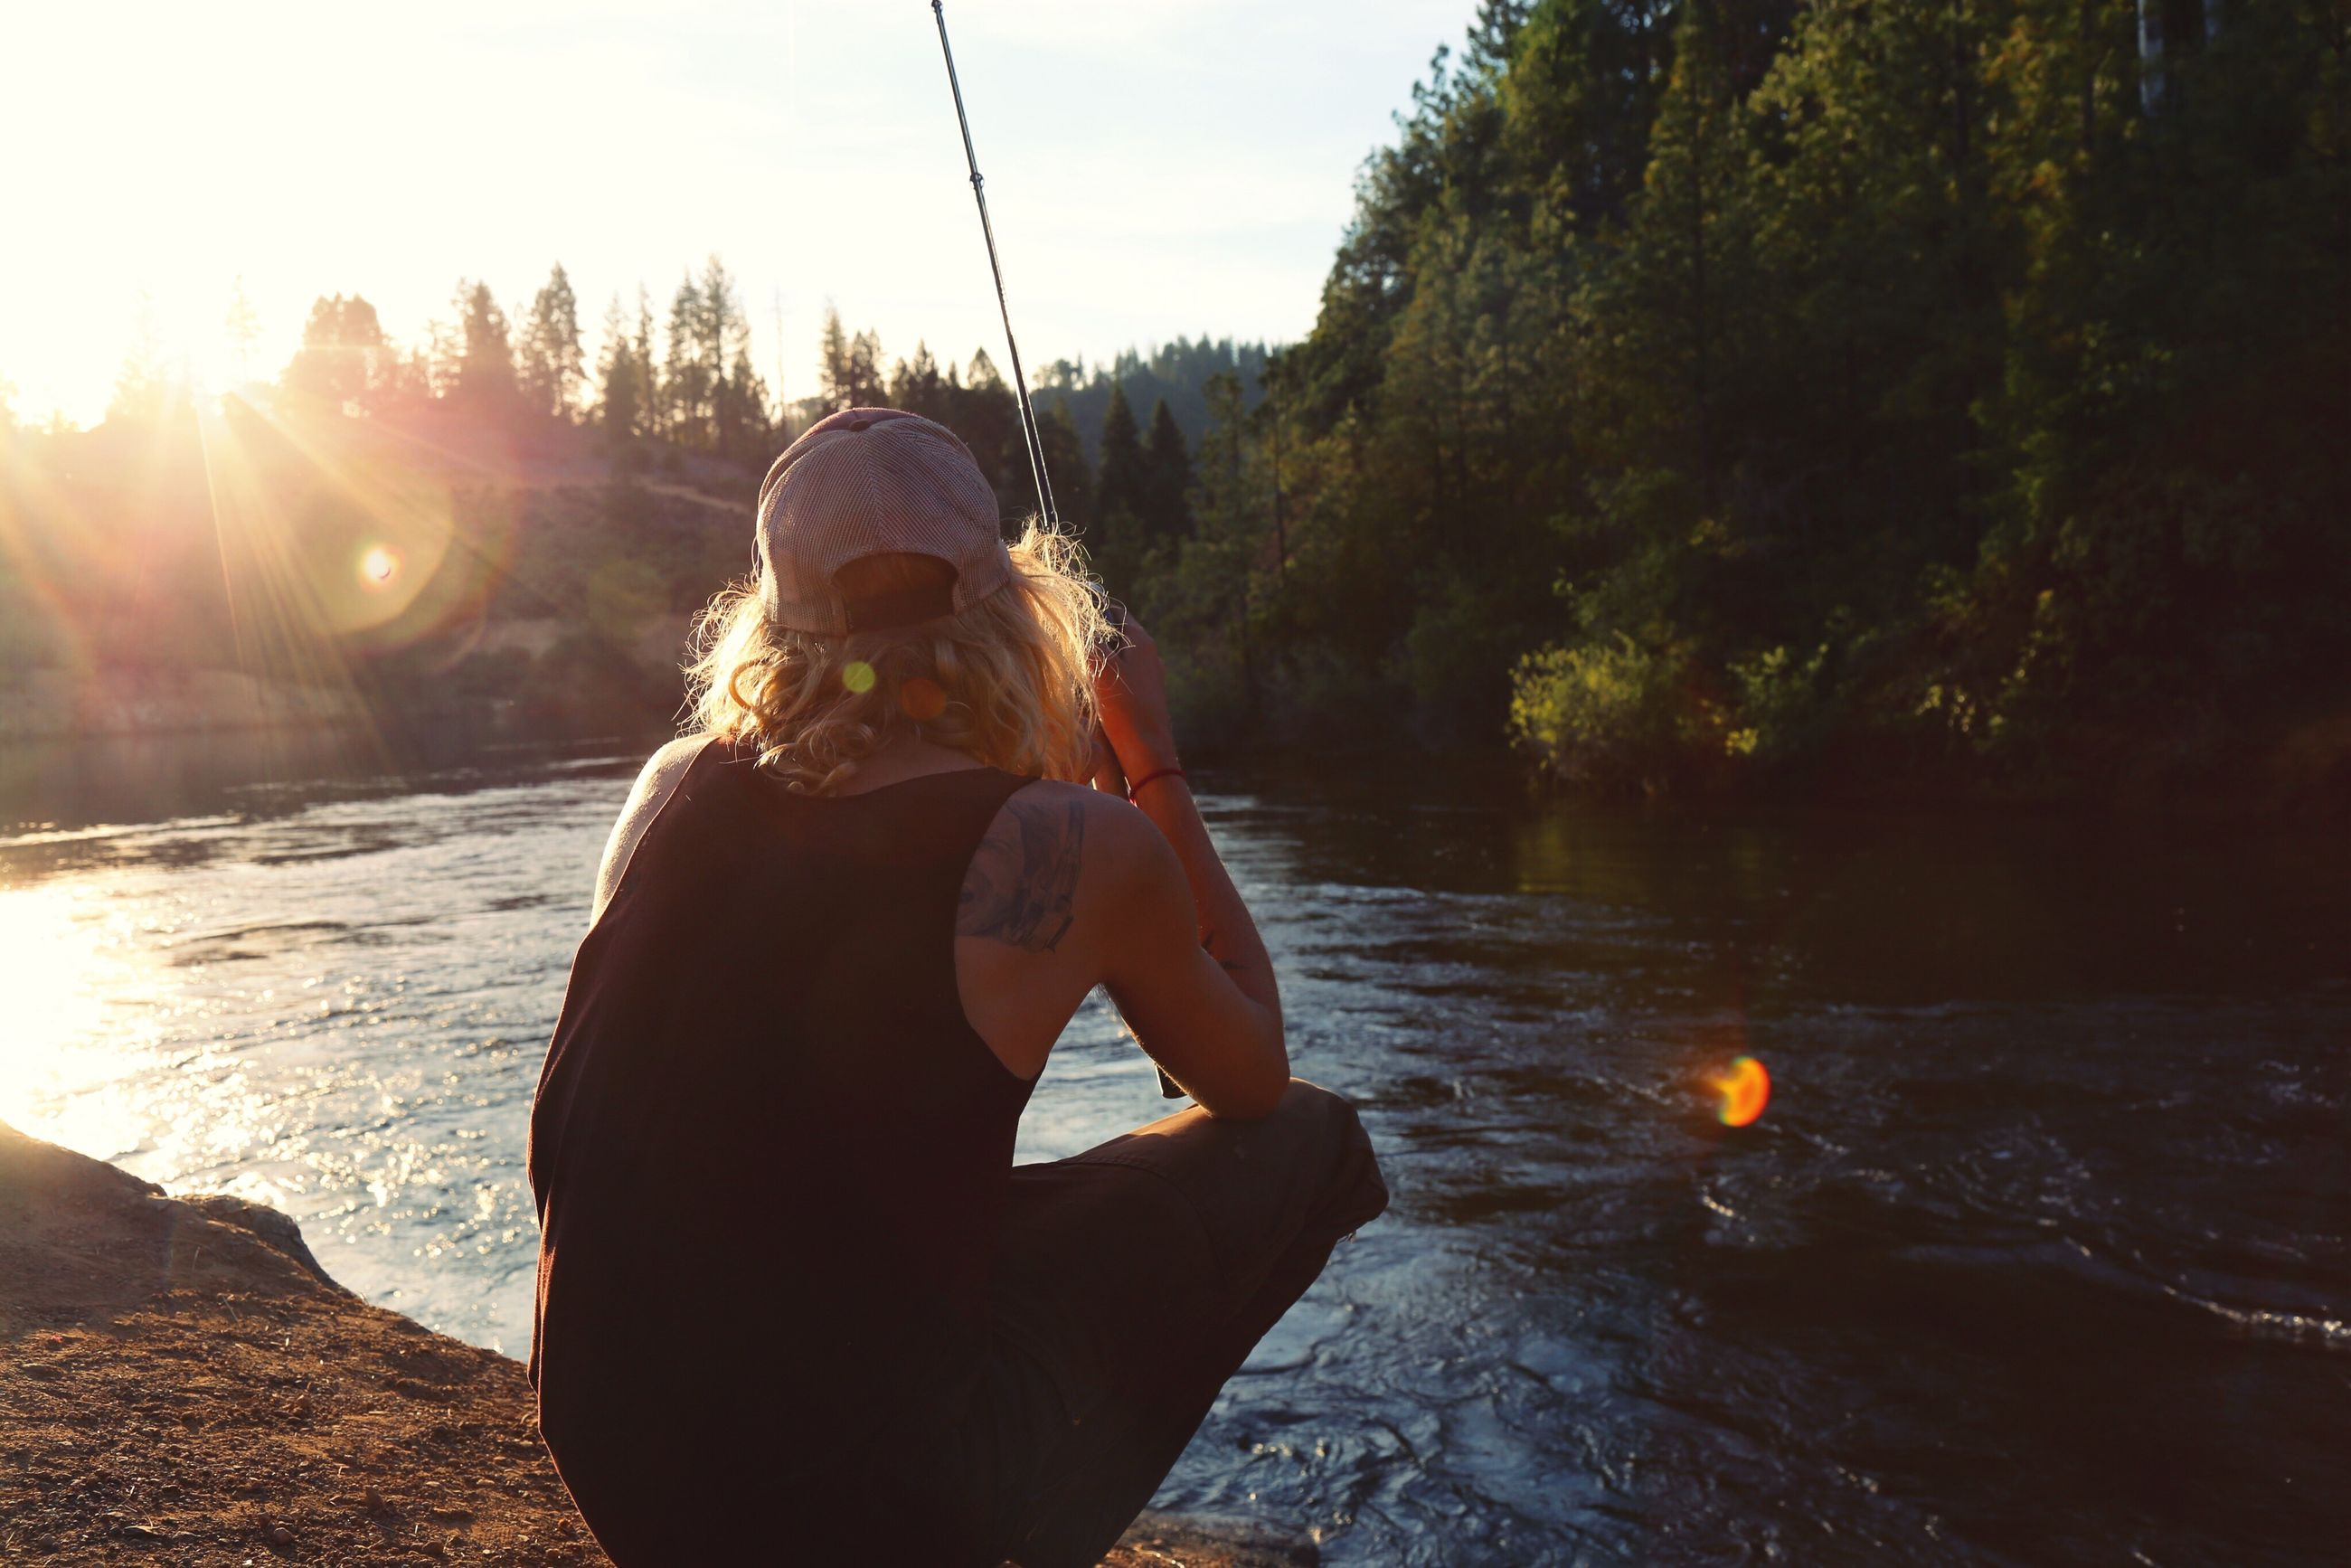 lifestyles, sun, leisure activity, sunlight, sunbeam, water, lens flare, holding, tree, young adult, casual clothing, standing, sunset, sky, river, full length, outdoors, clear sky